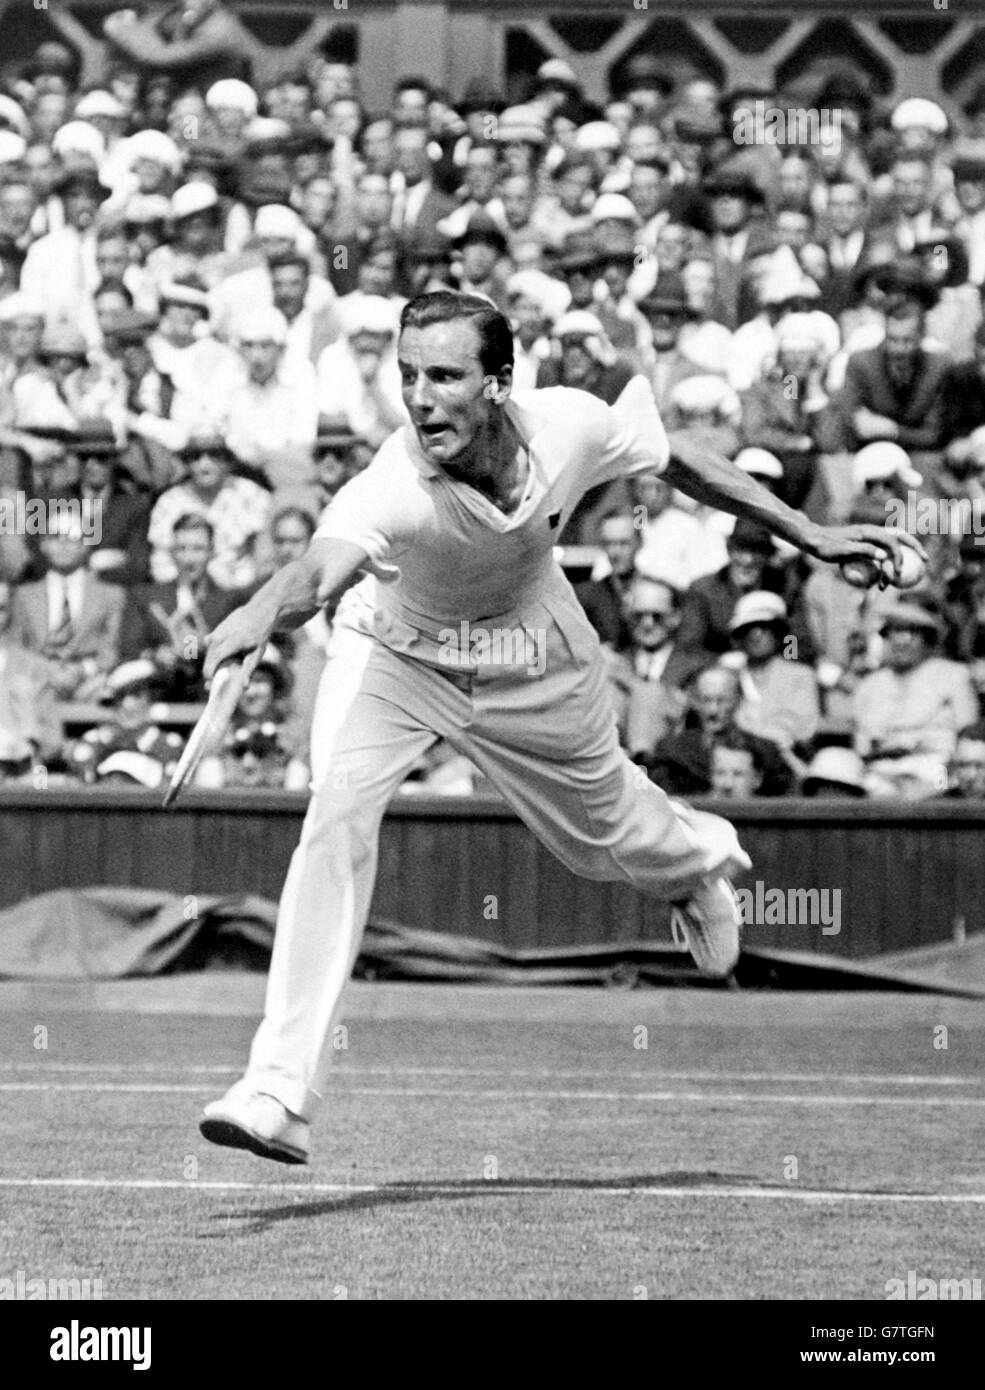 Tennis - Wimbledon Championships - Men's Singles - Fred Perry v Adrian Quist - Stock Image